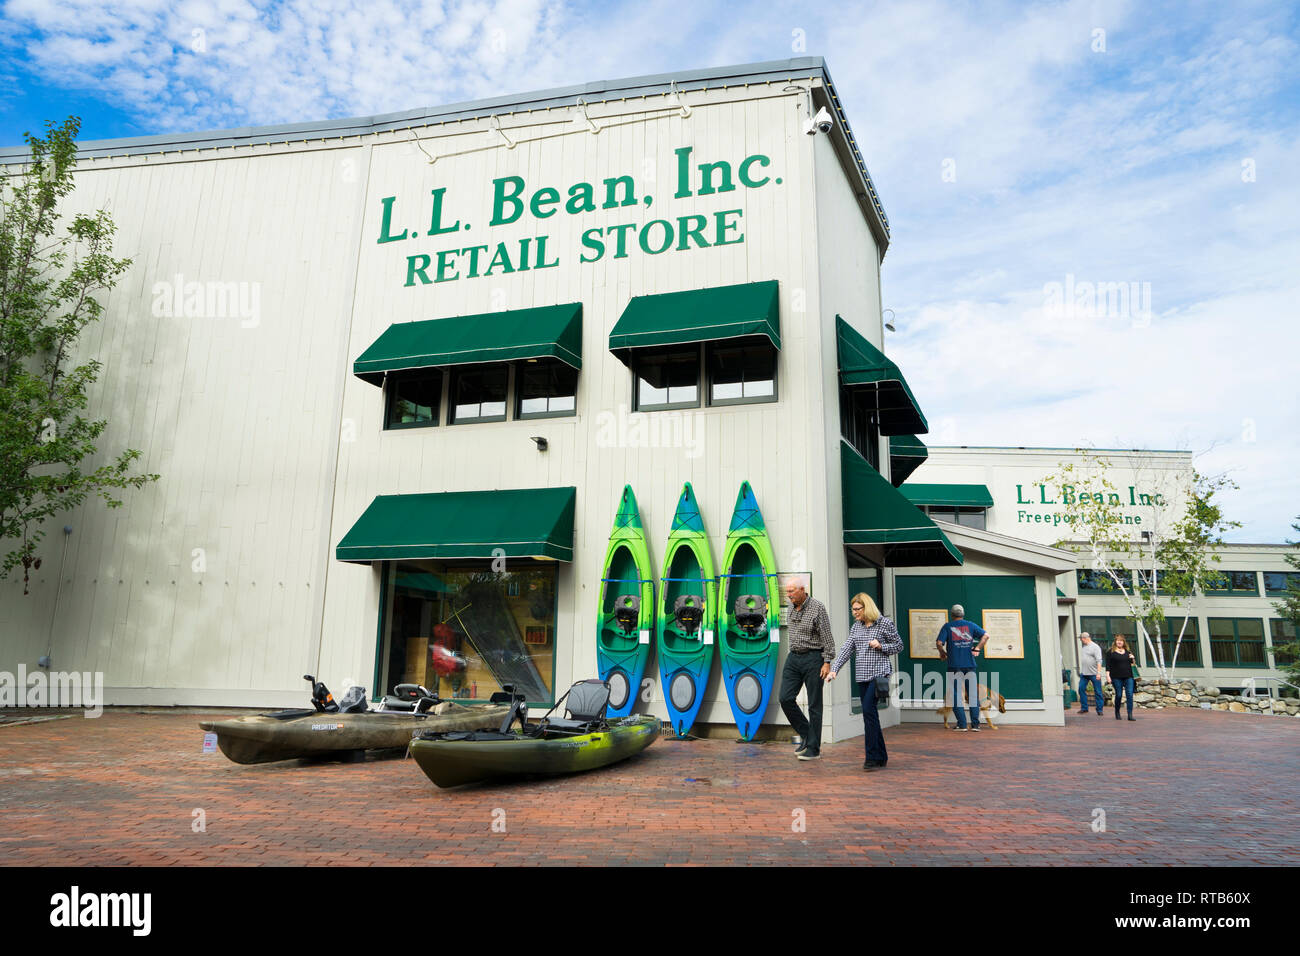 Outdoor plaza of L.L.Bean main store in Freeport, Maine, USA. - Stock Image